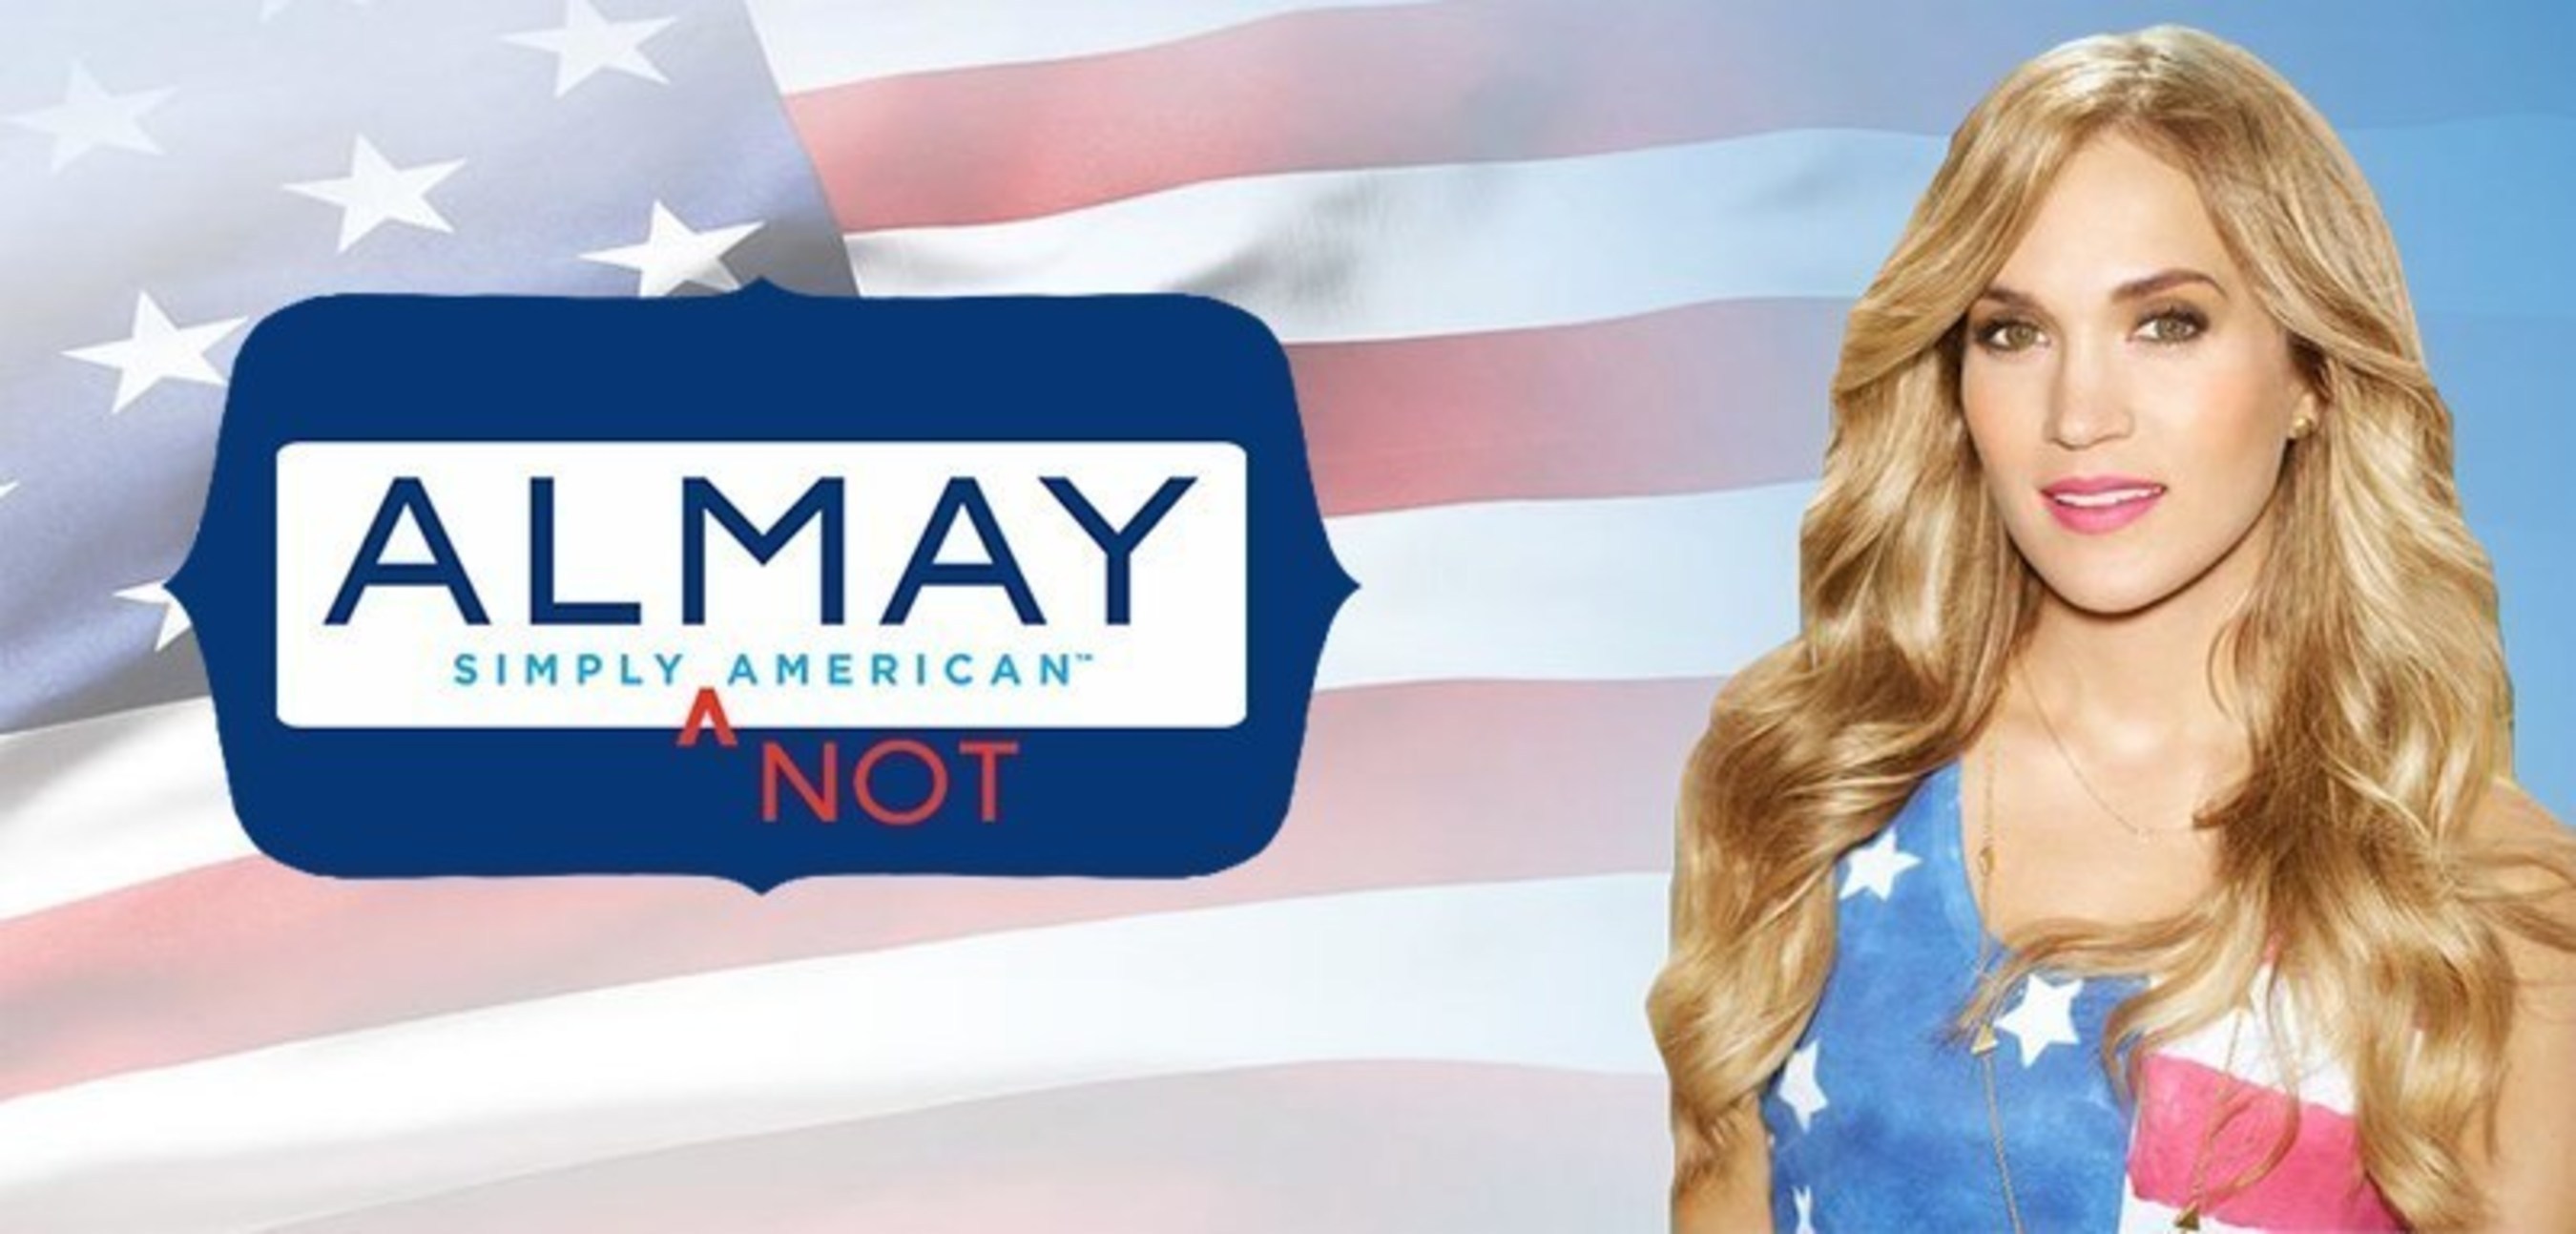 'Almay Simply American' Campaign Simply Not True; Ad Watchdog TINA.org Files Complaint about Deceptive Made in USA Claims